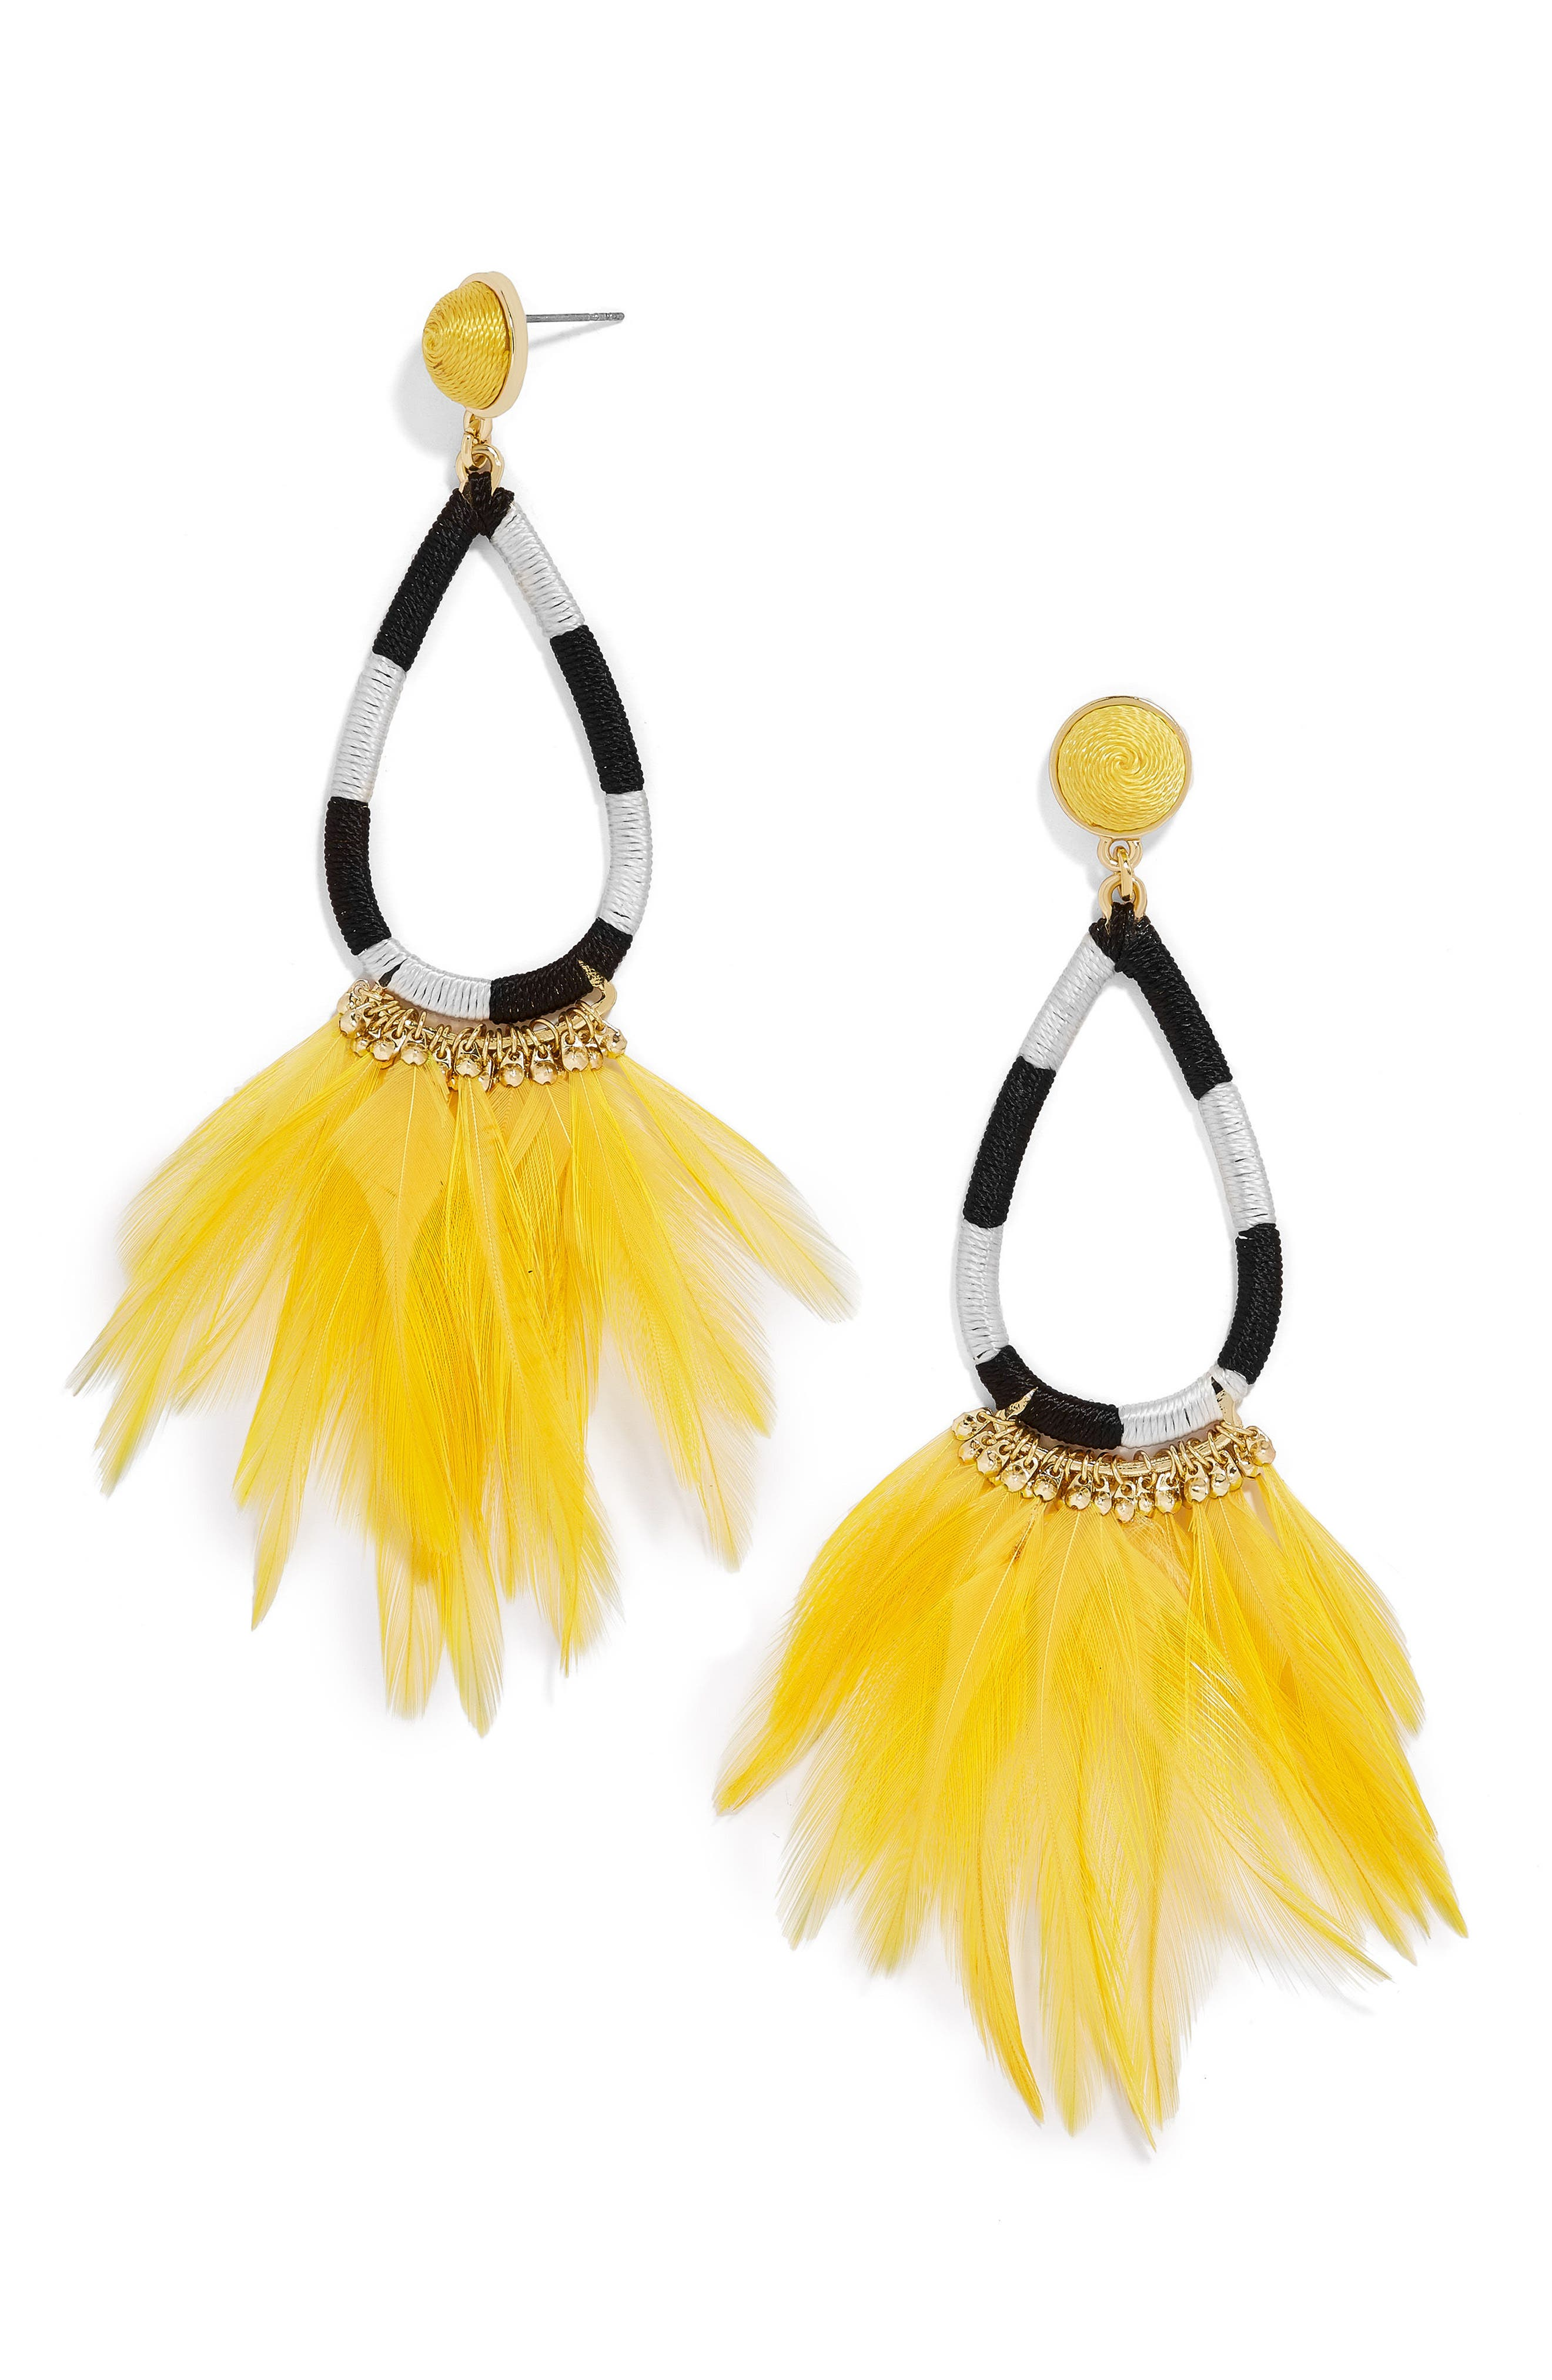 Marigold Feather Shoulder Duster Earrings,                             Main thumbnail 1, color,                             700